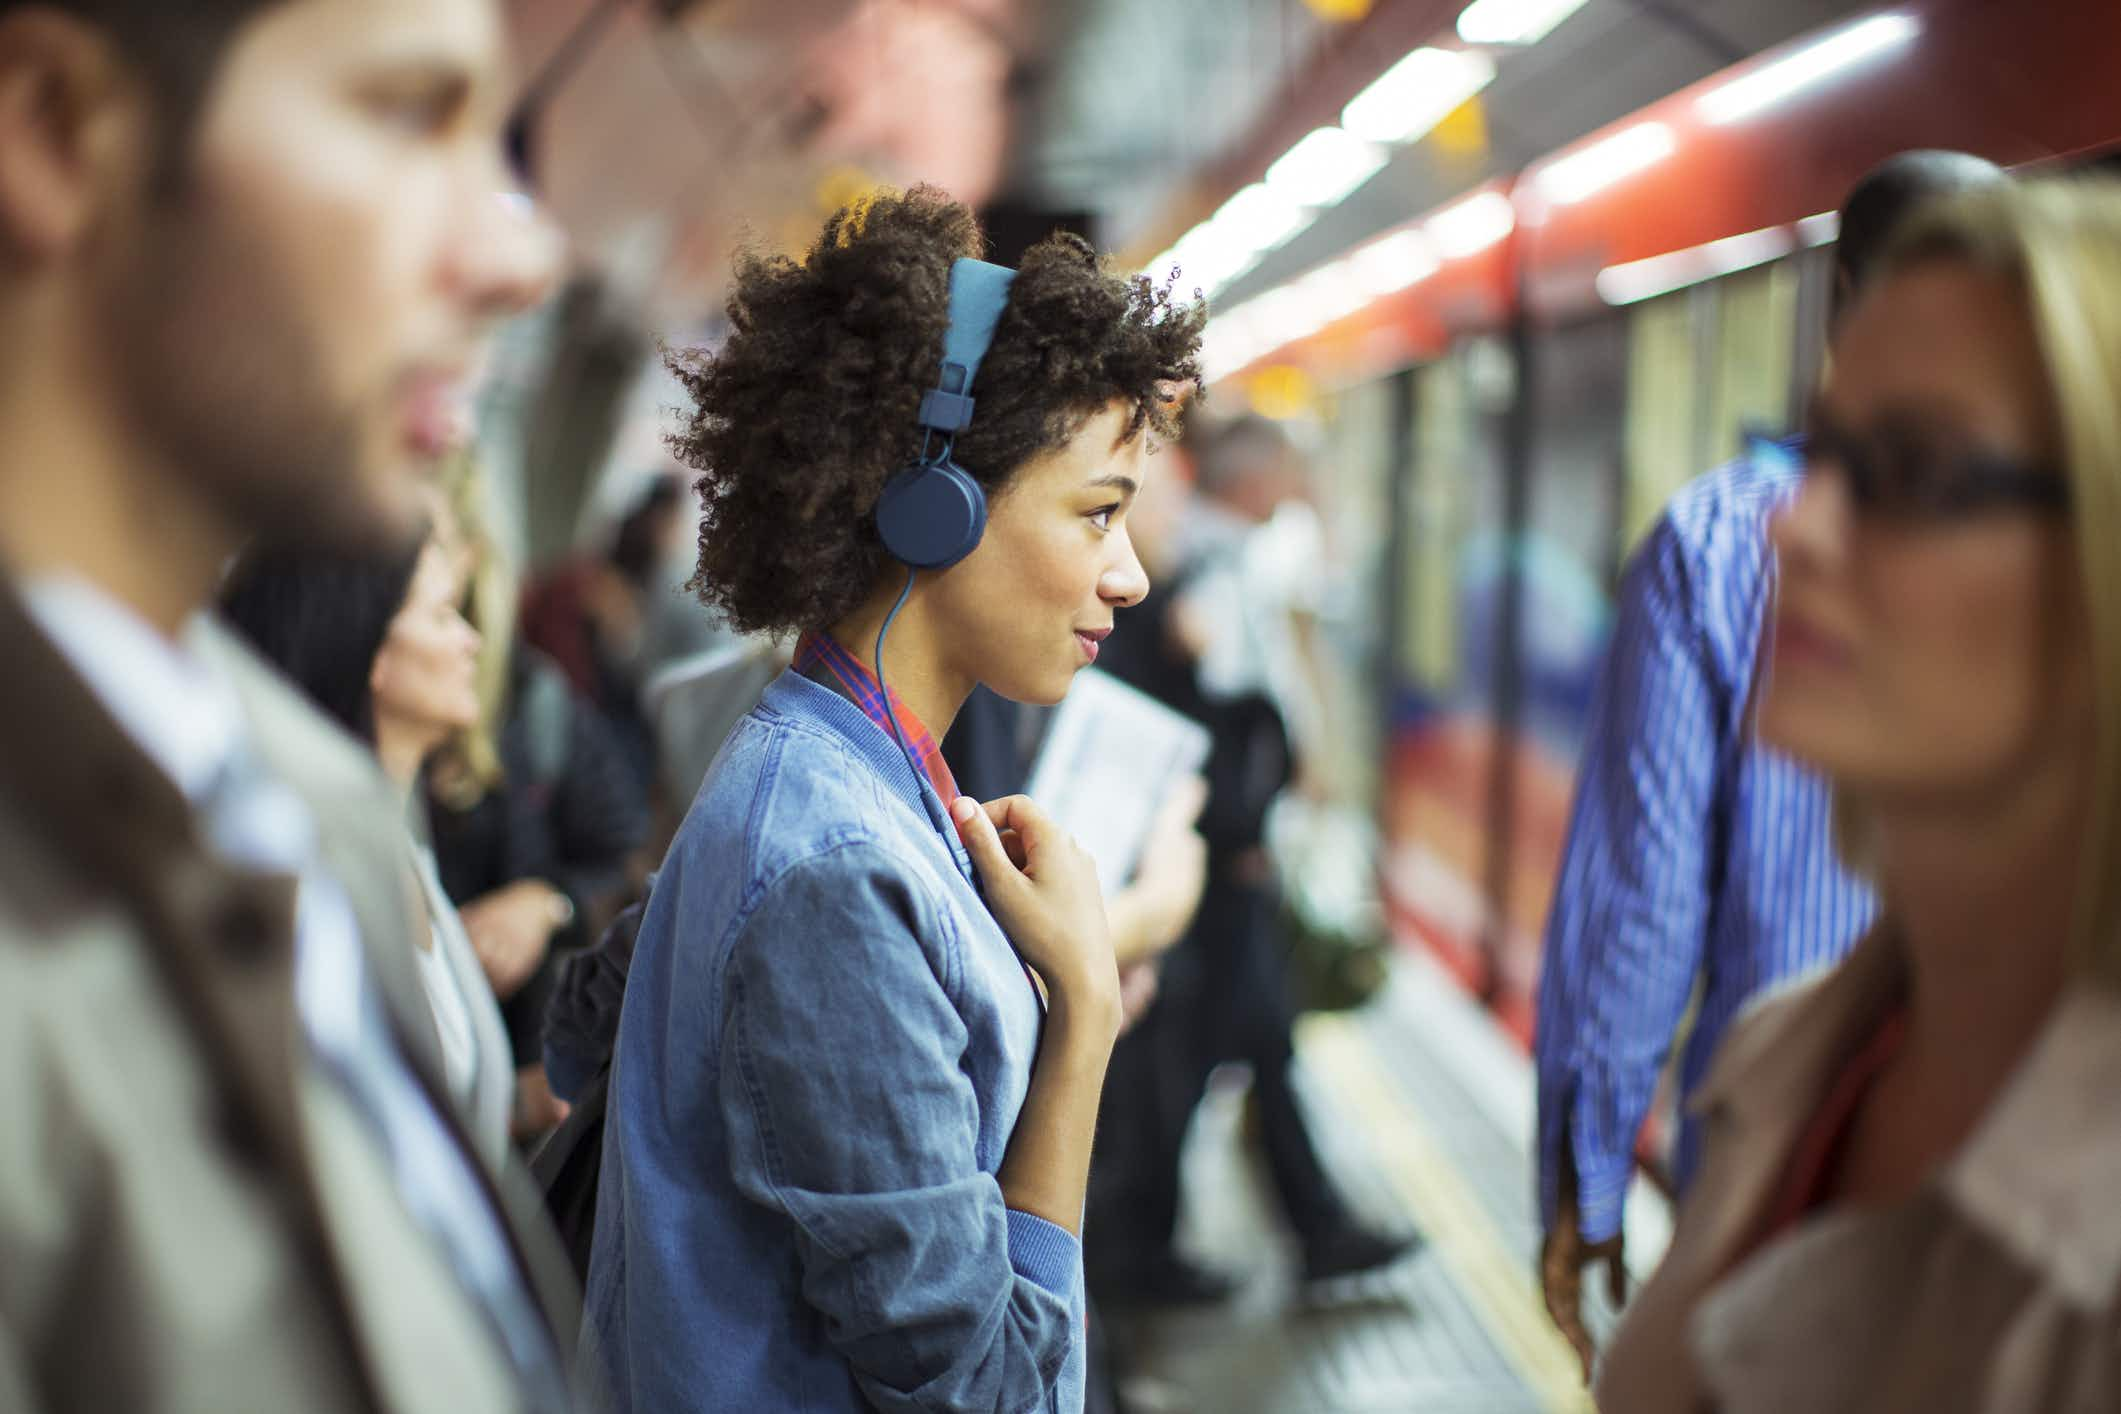 Survey reveals the Tube habits of Londoners, including their favourite lines